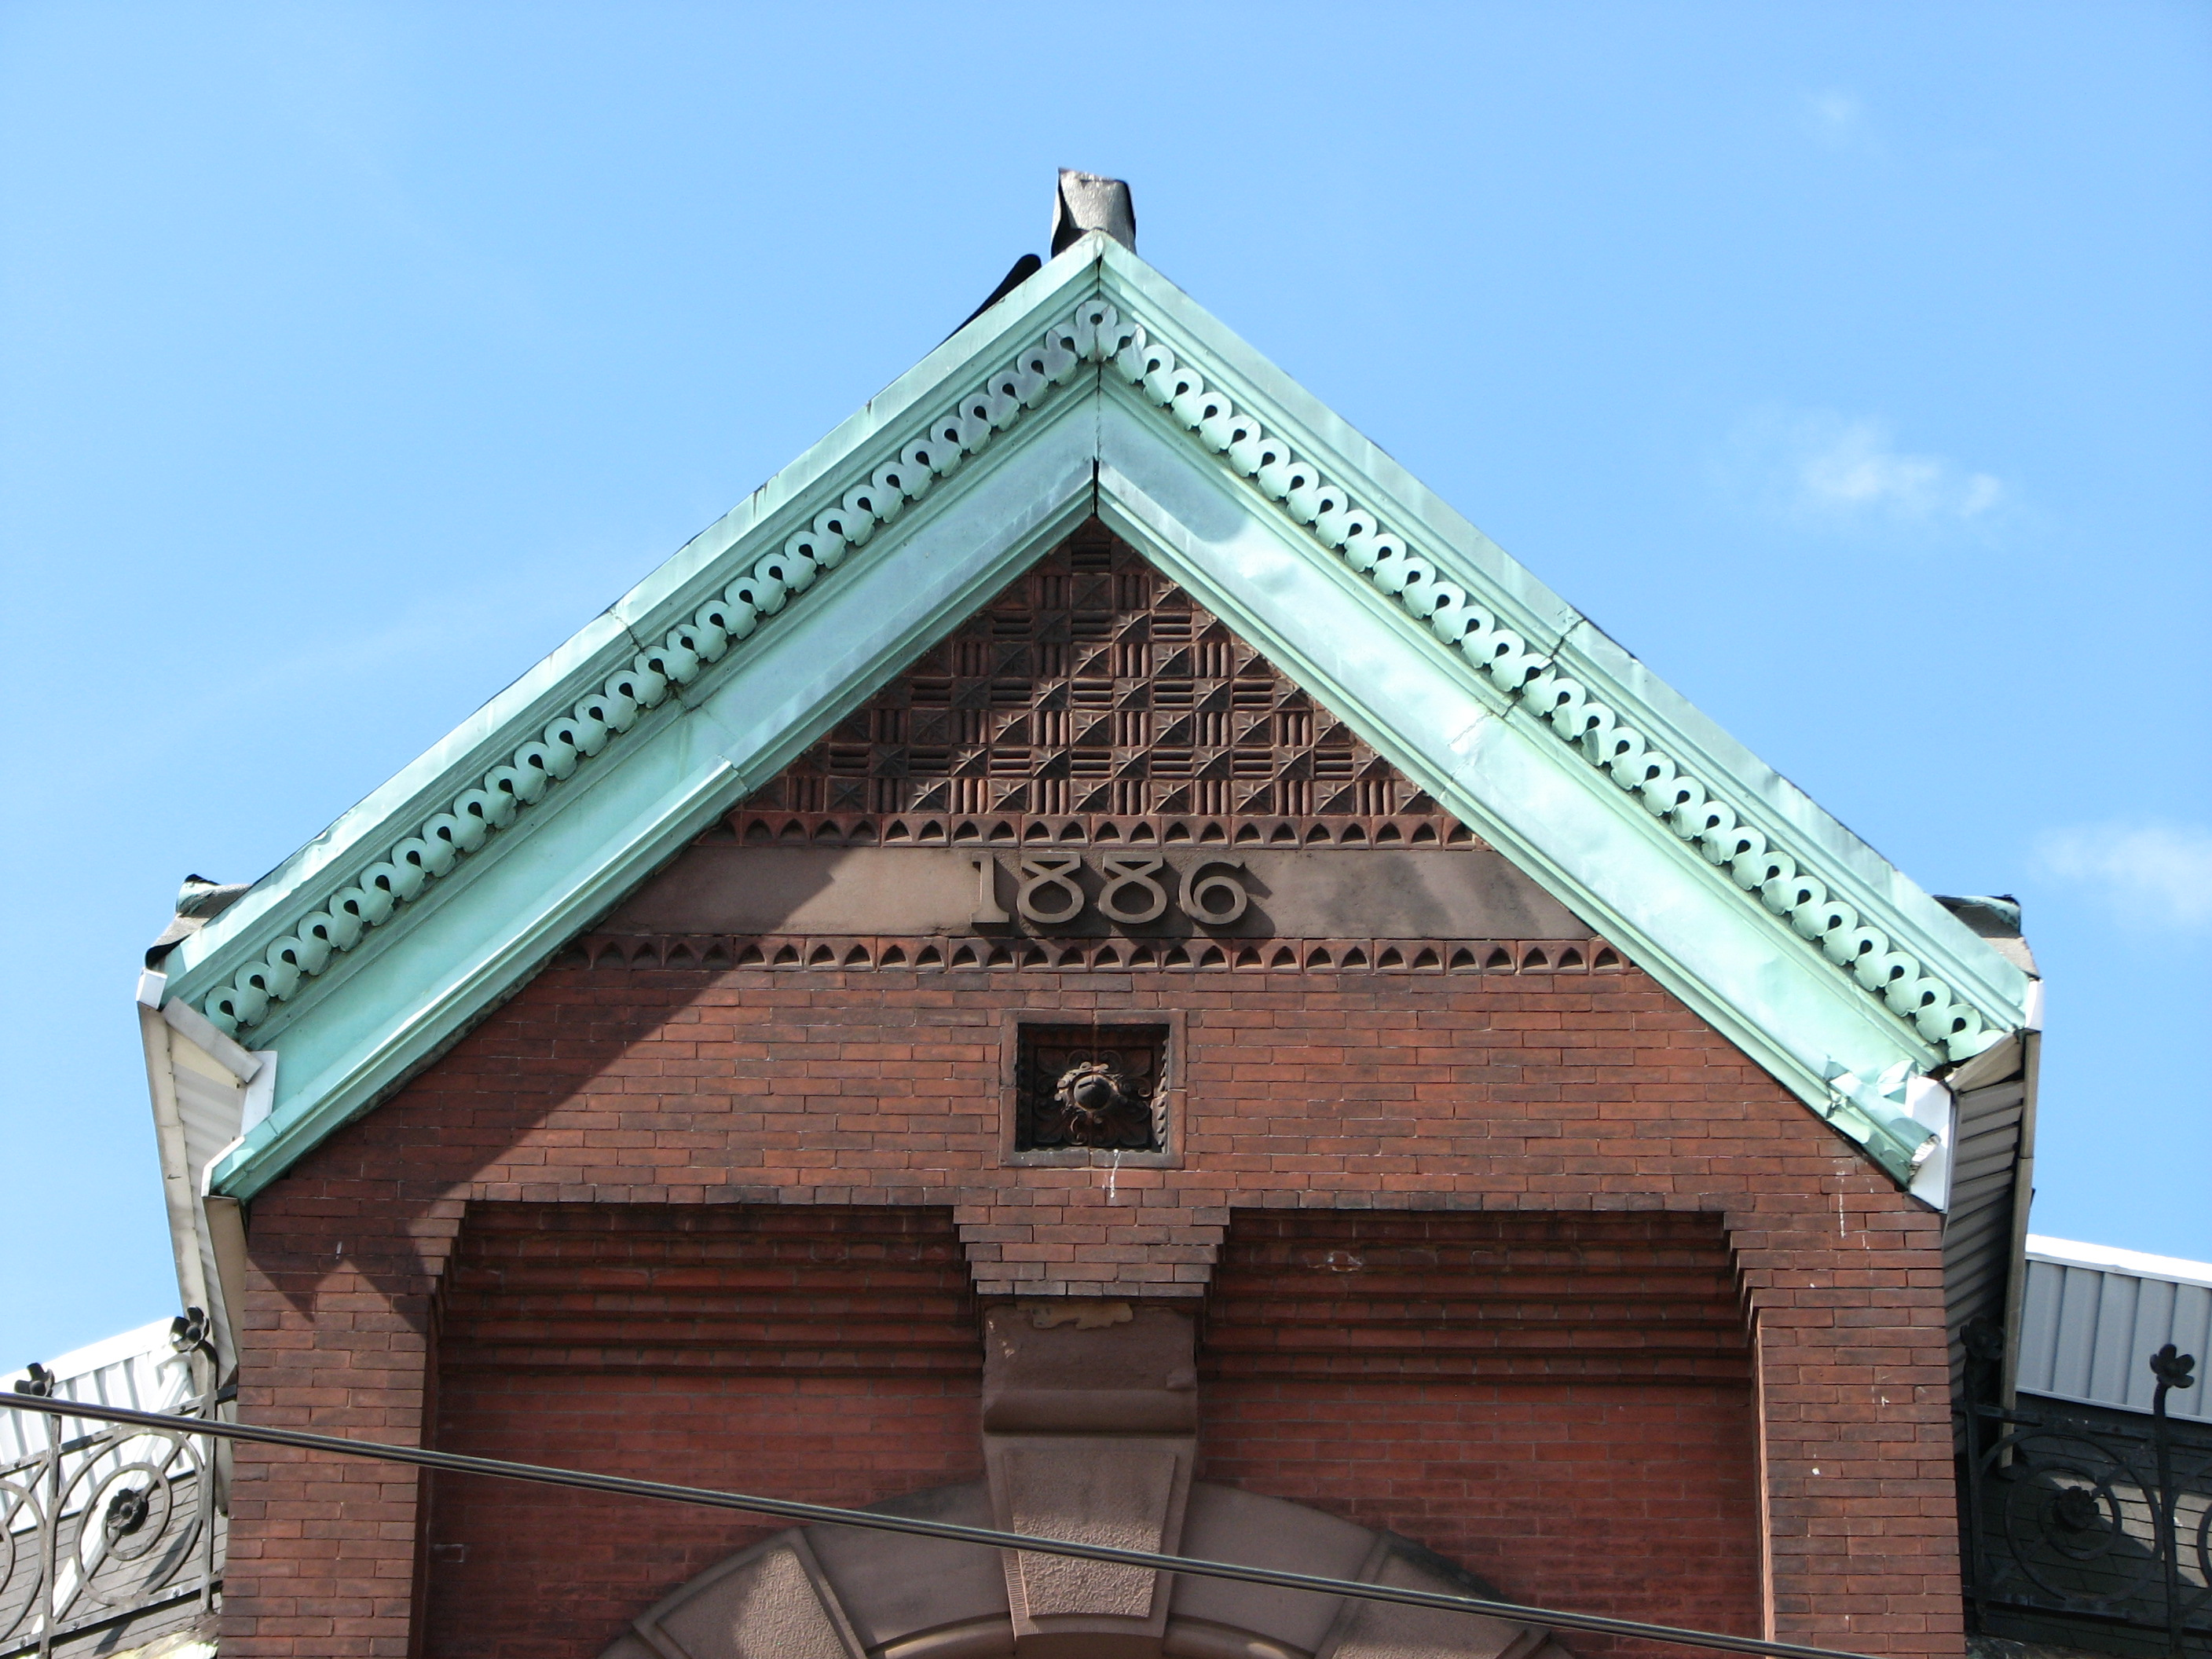 The gable at the top of the building announces the year of its birth.